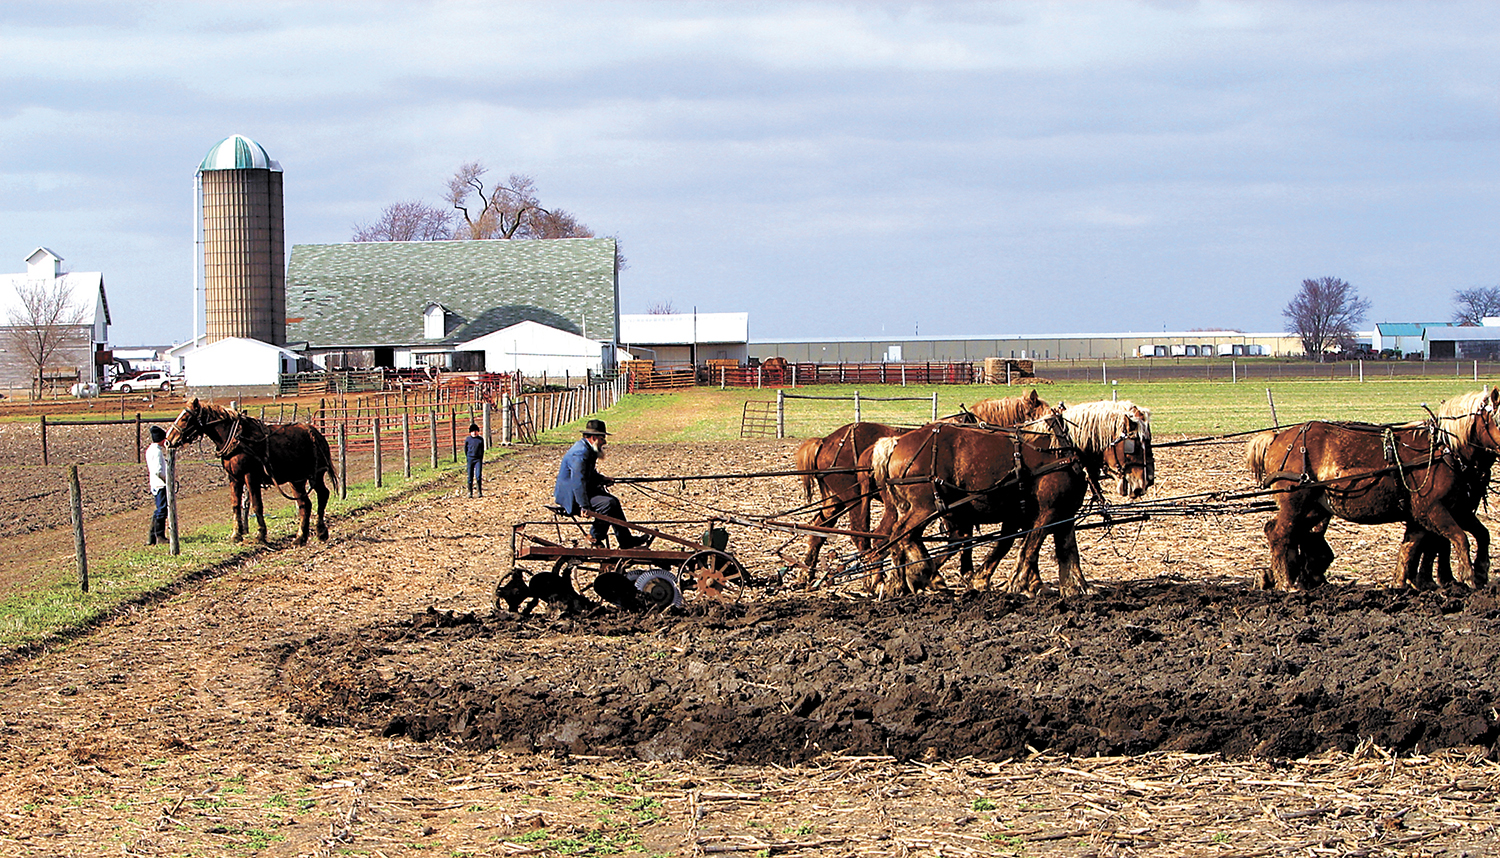 Spring plowing with Belgian draft horses makes the plain and simple life of peace, hard work and love of the soil, a scene of tranquility at an Amish farm nearArthur.Bill Hagen/The State Journal-Register